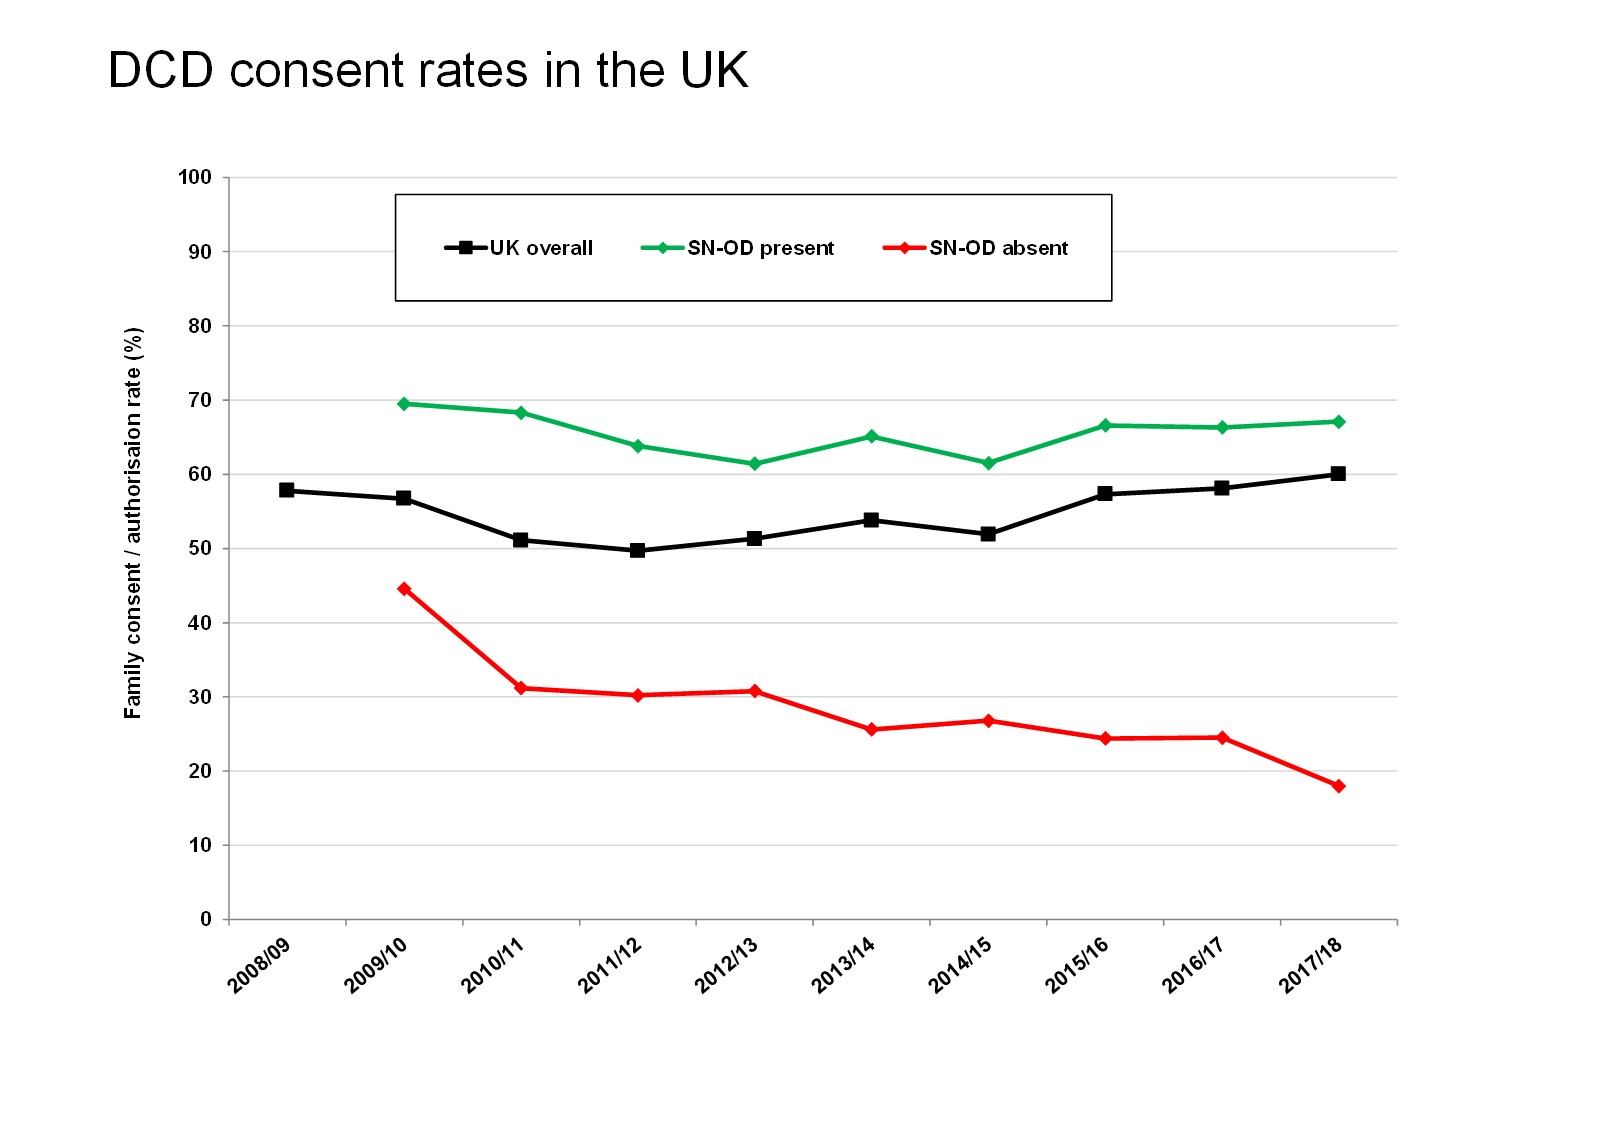 DCD consent rates in the UK (jpg)